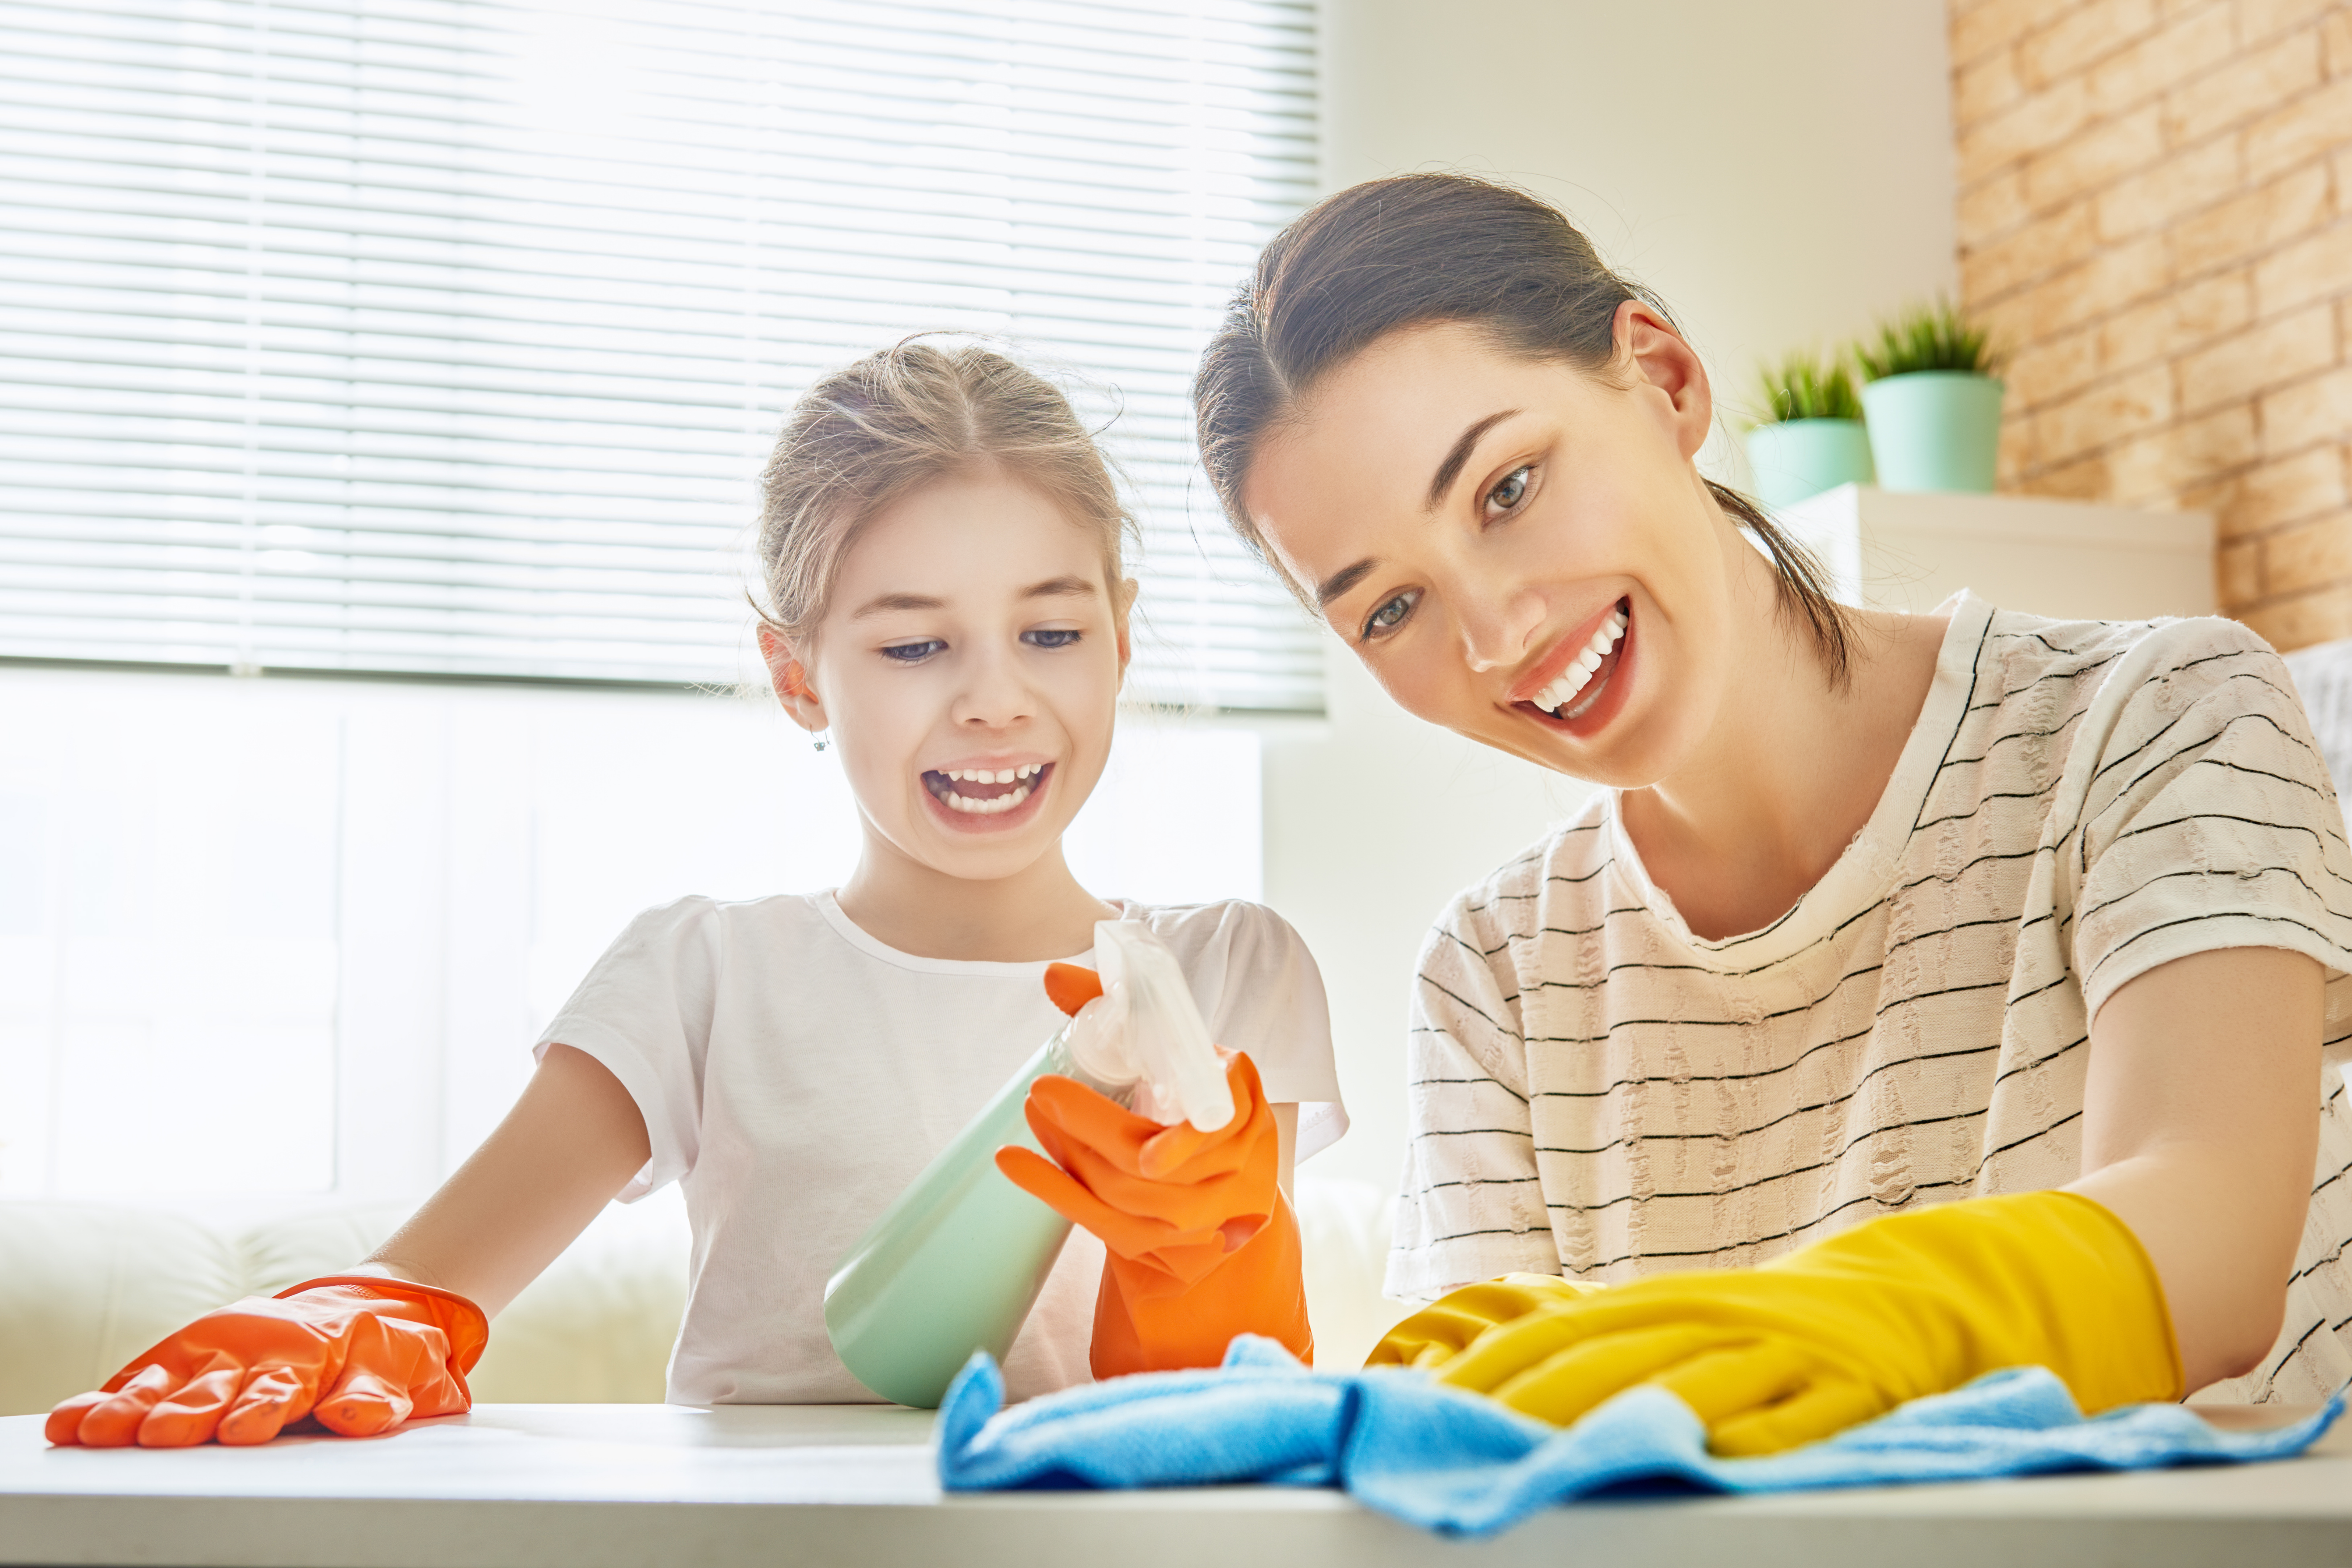 House cleaning services NW10